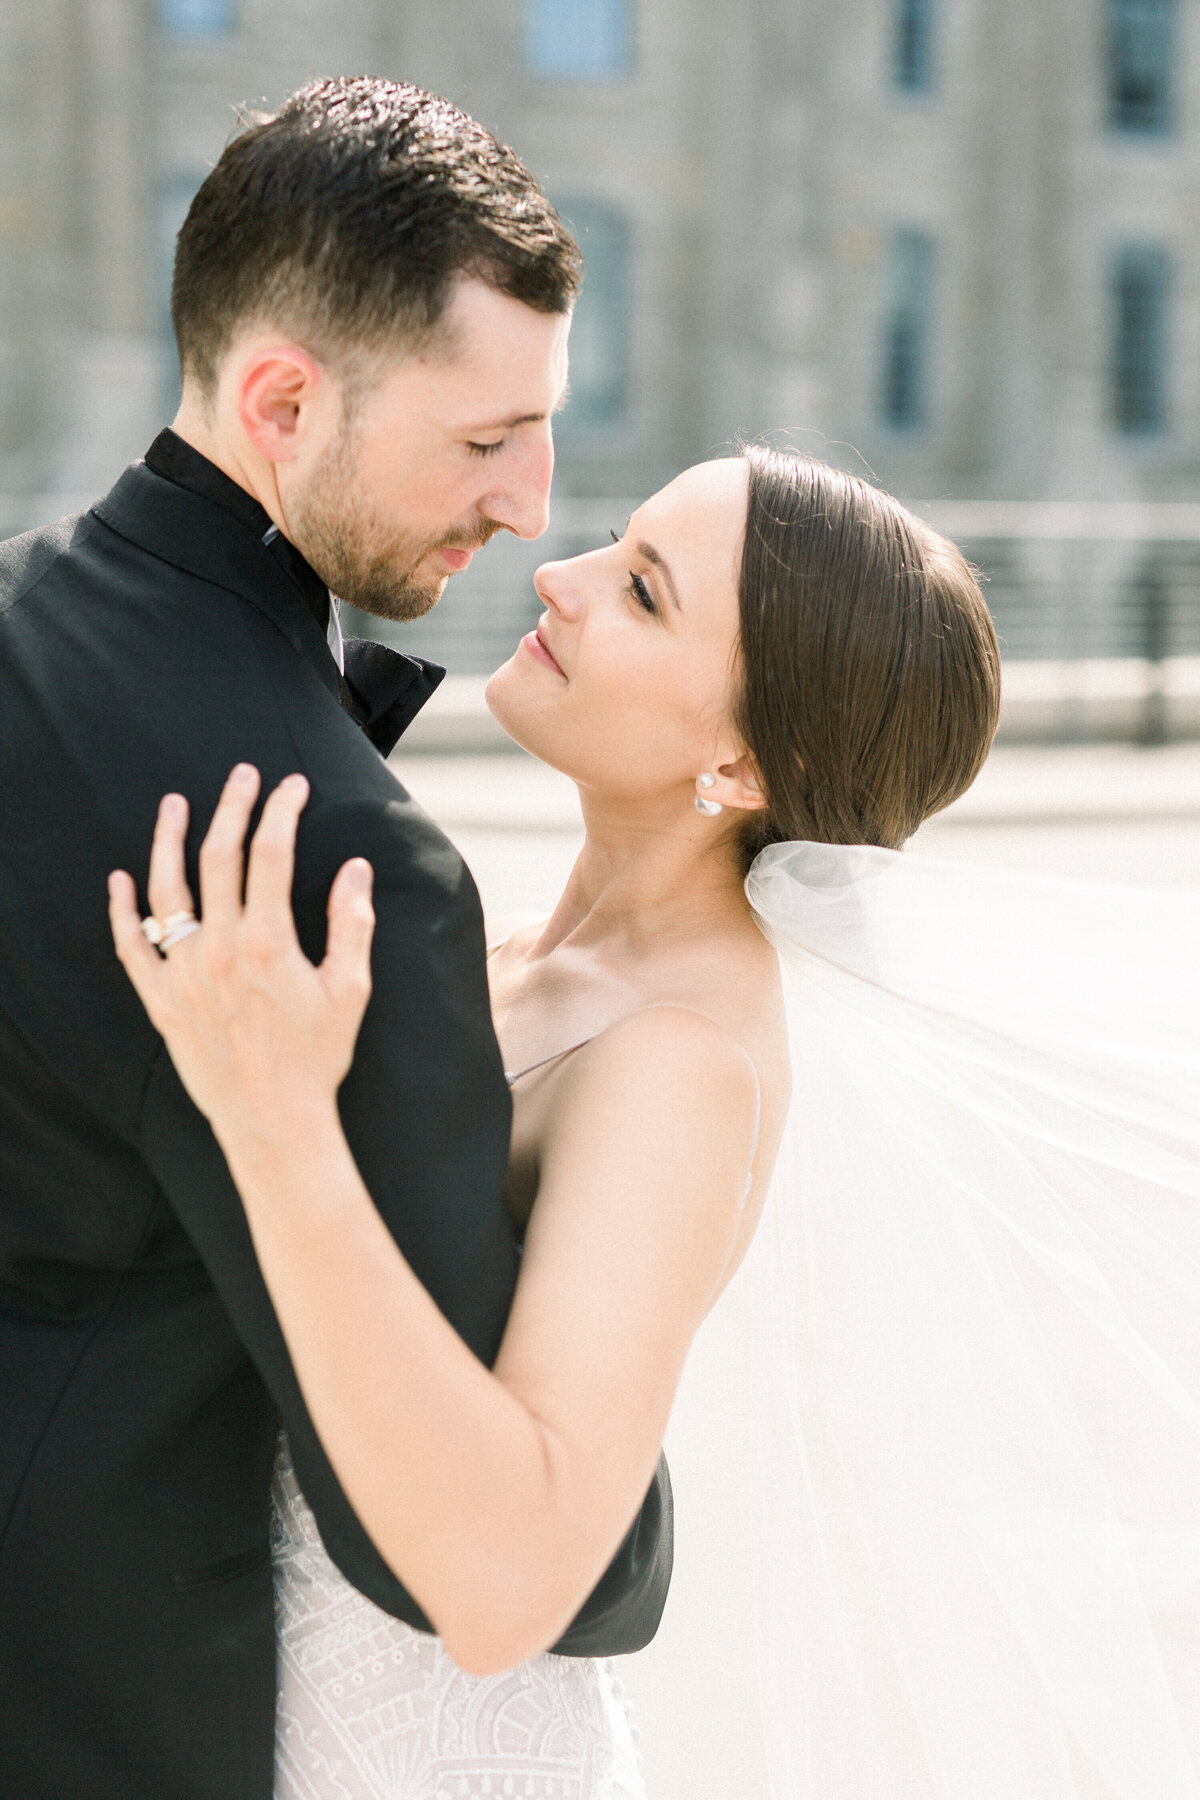 Minnesota wedding photographer, Minneapolis wedding photographer, Minnesota luxury photographer, minnesota light and airy photographer, minnesota light and airy wedding photographer, minneapolis st paul photographer